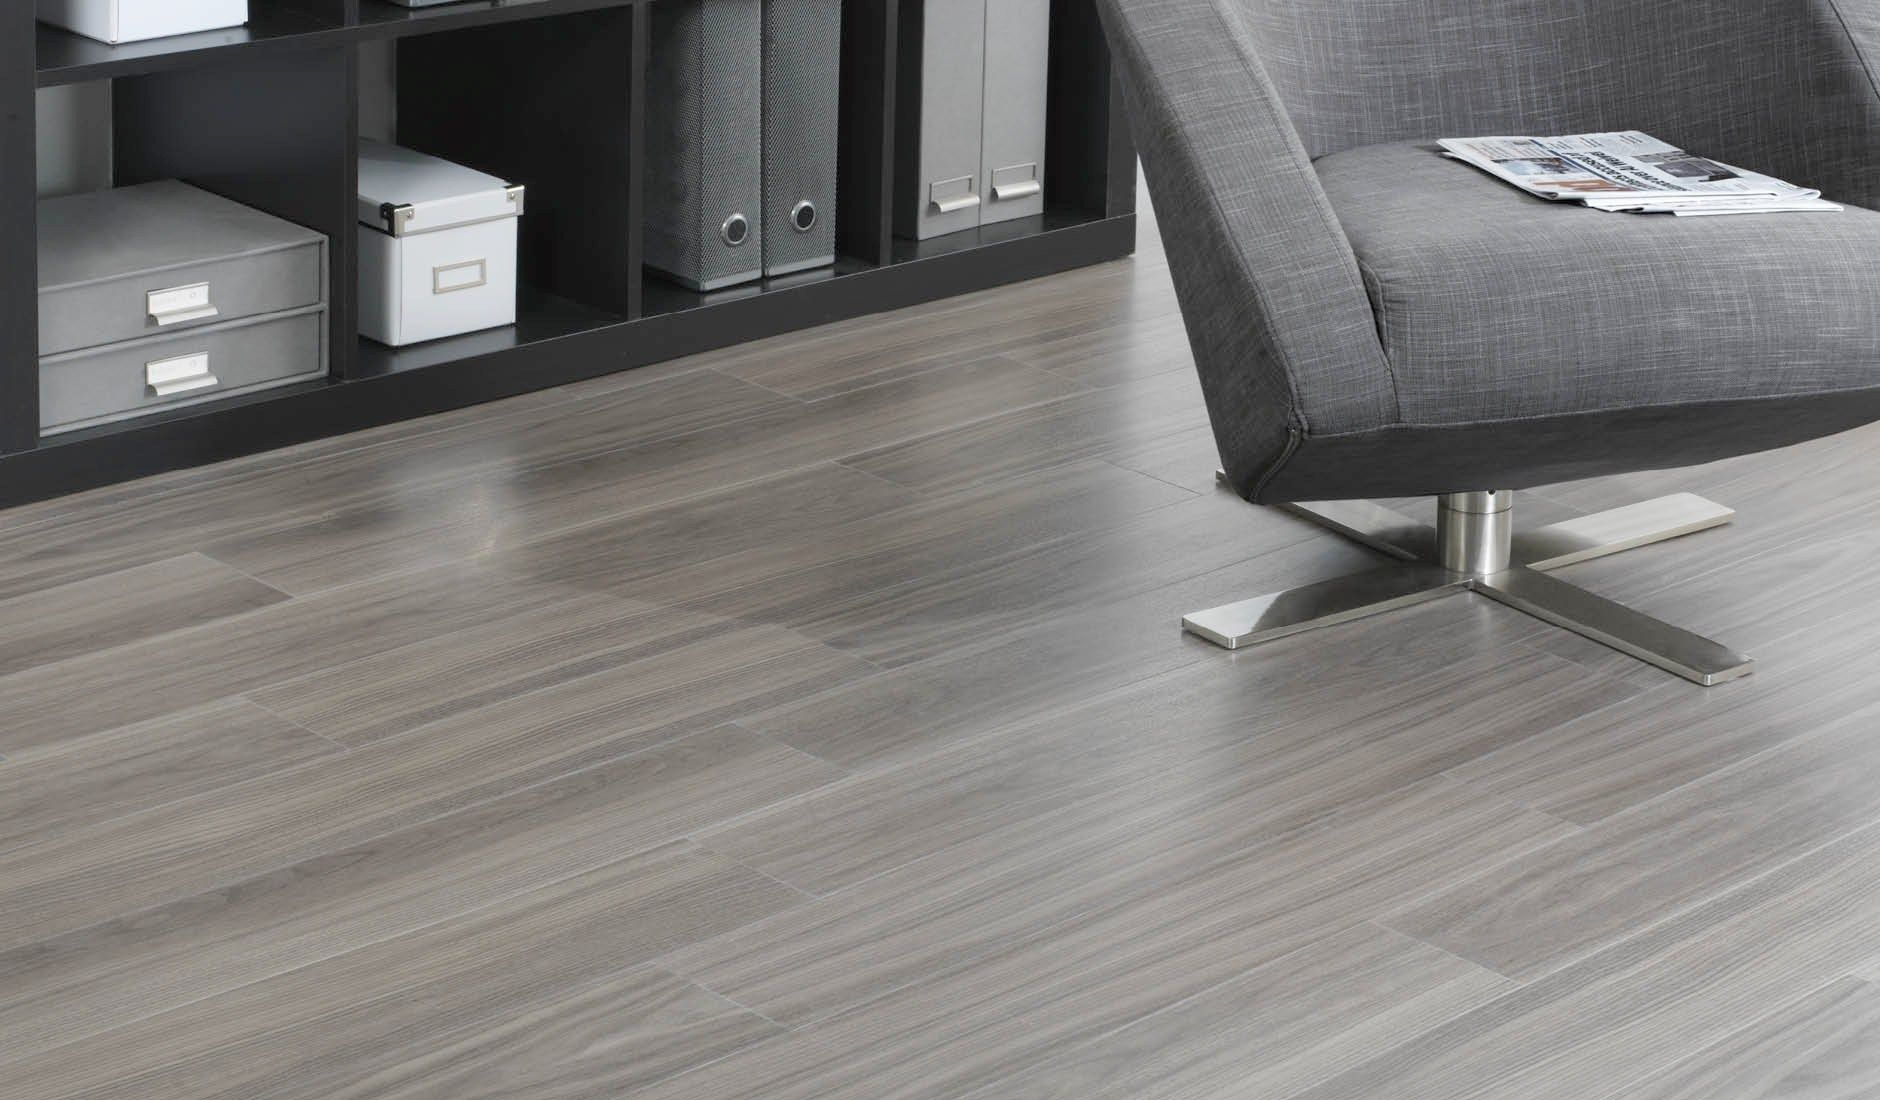 Best Office Flooring Flooring House Furniture Design Wood Laminate Flooring